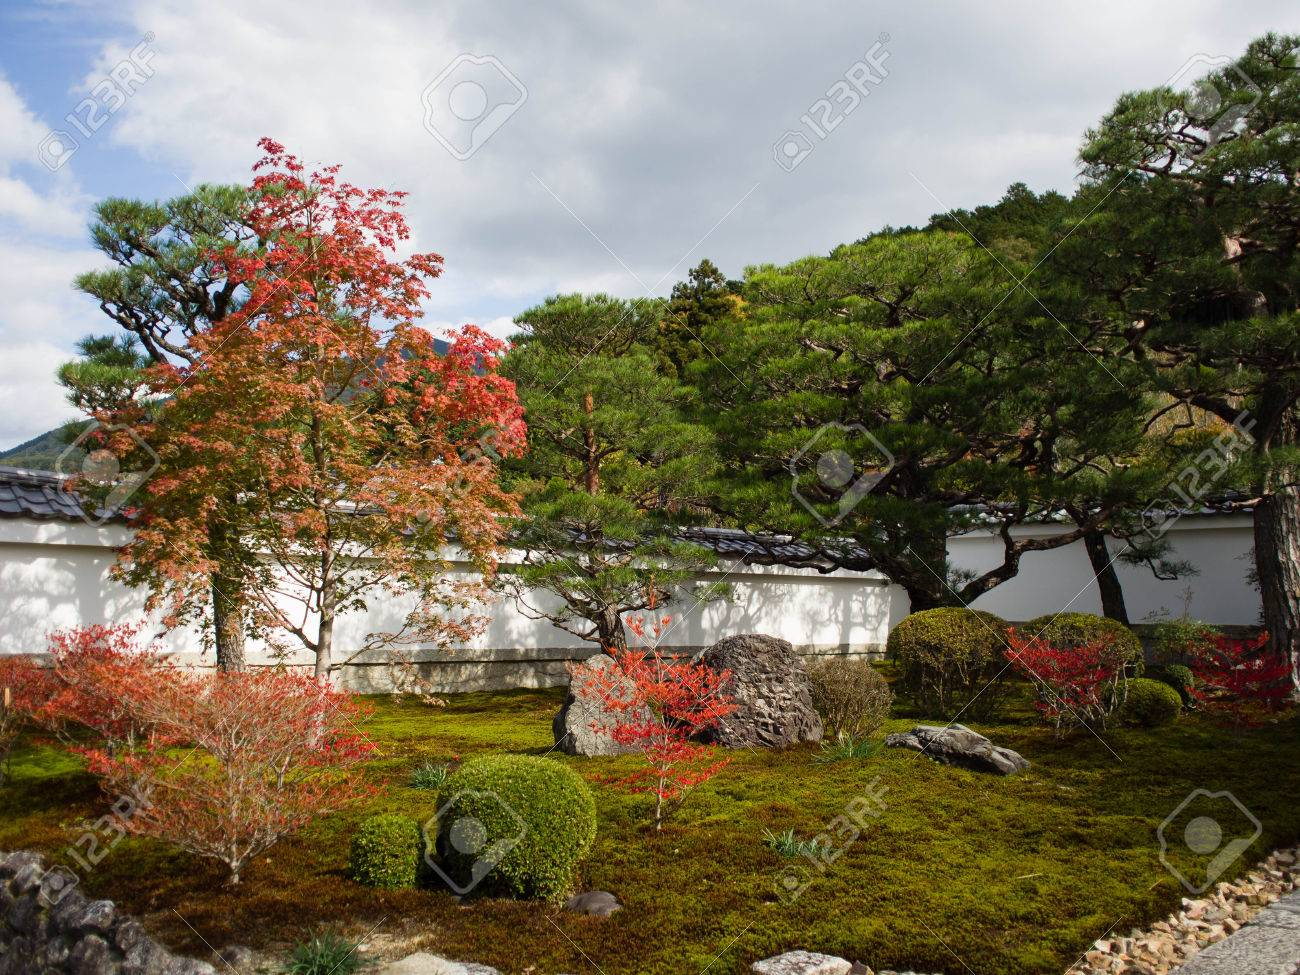 Japanese Zen Gardens In Kyoto Stock Photo, Picture And Royalty Free ...